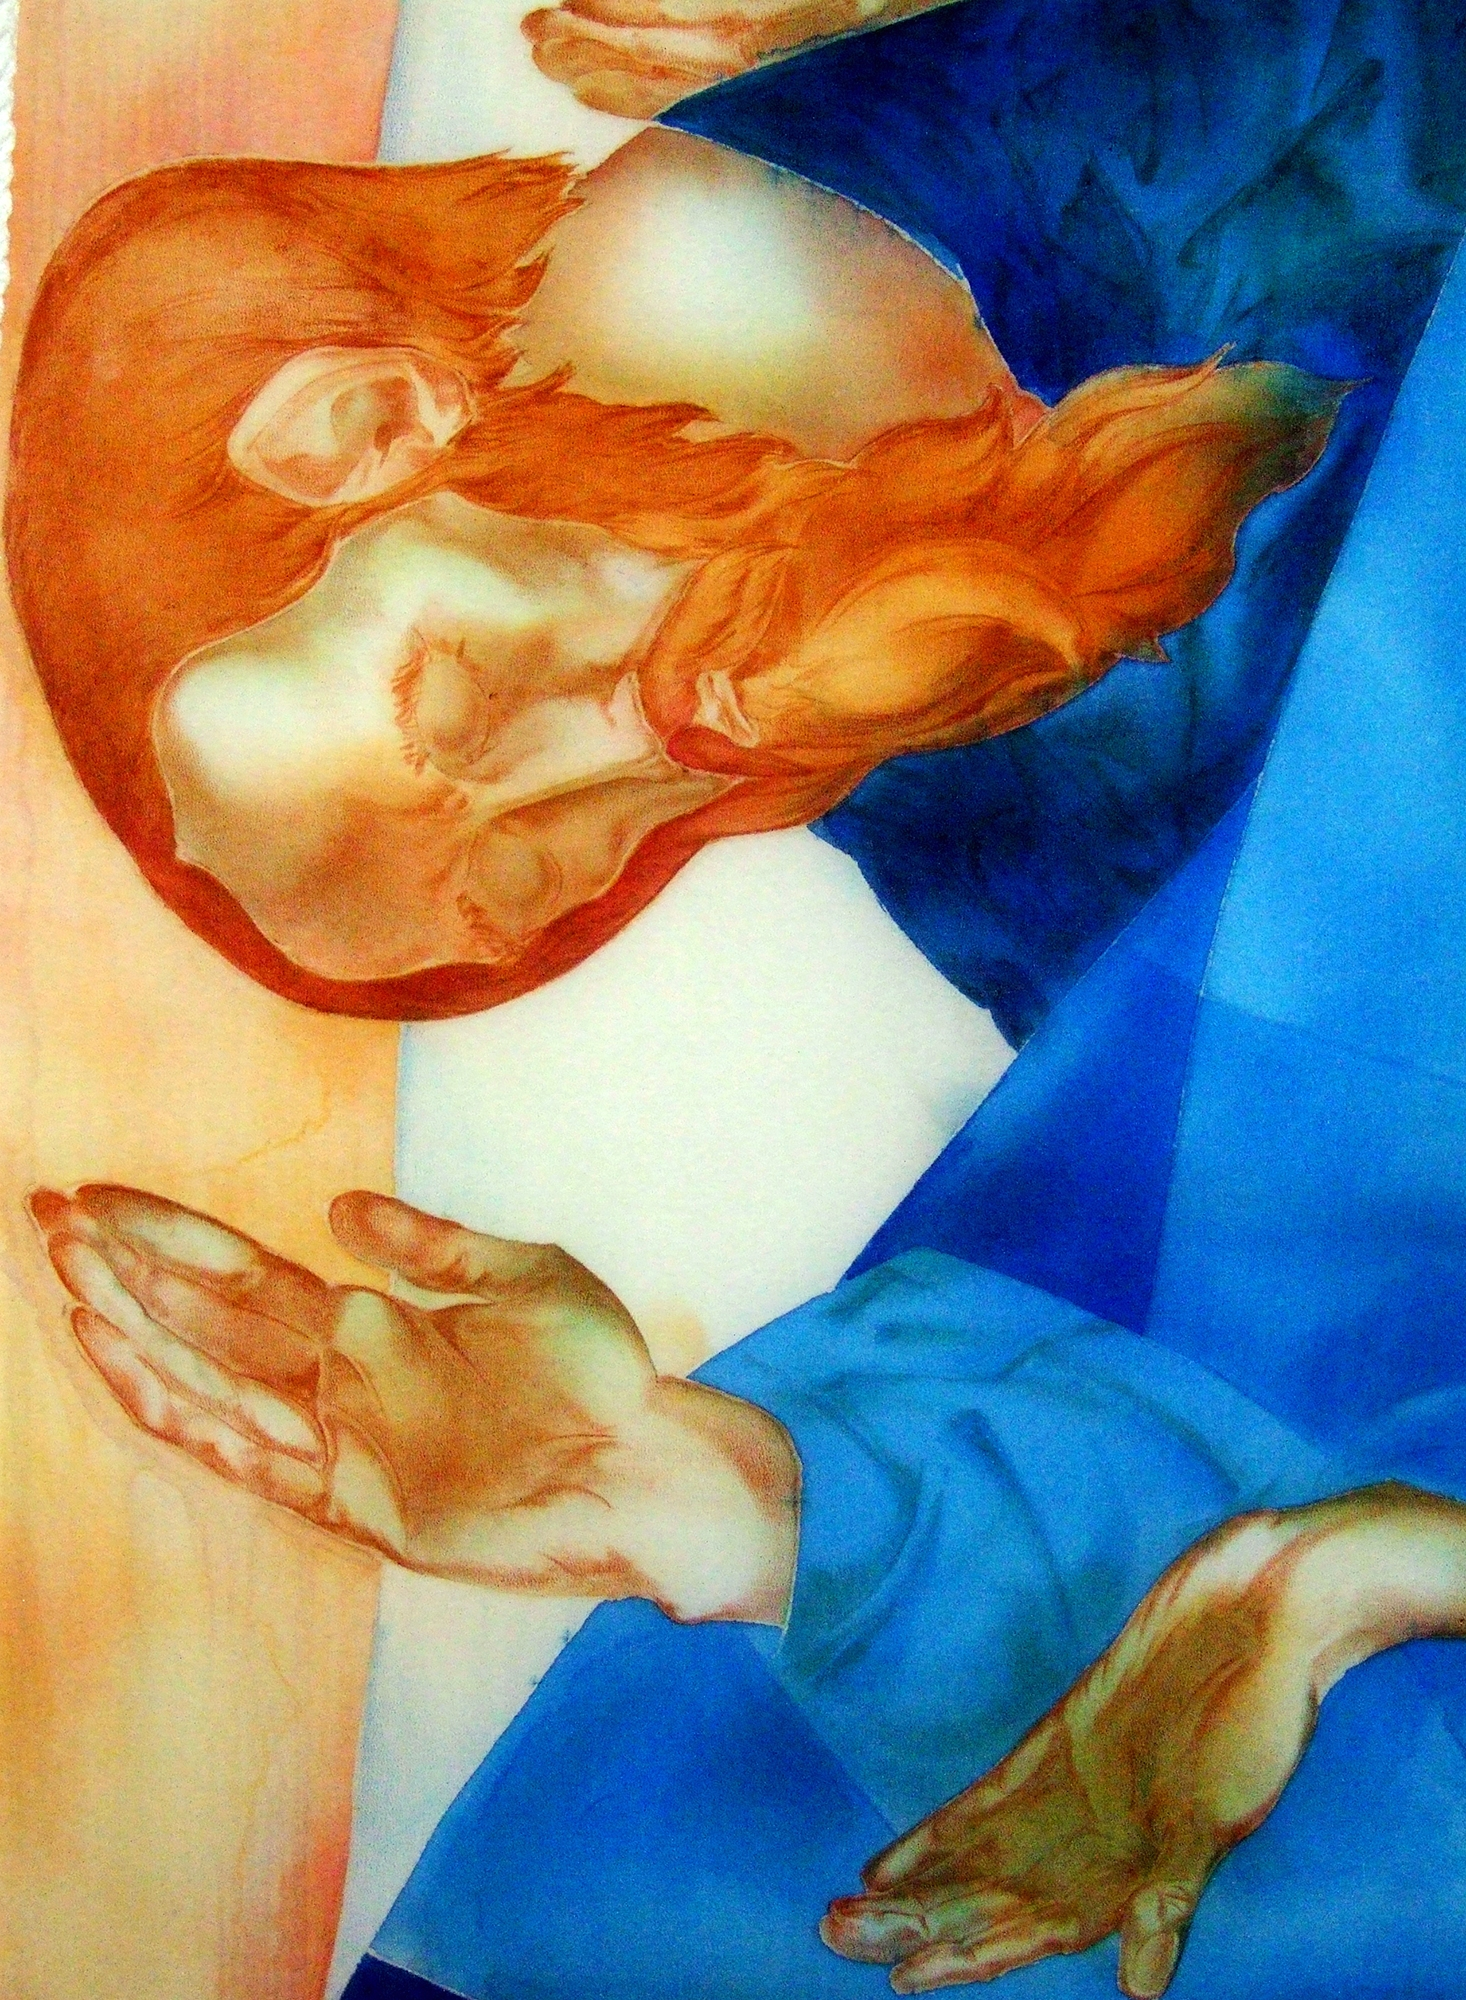 Denys Savchenko. 2001. Eucharist. Painting on silk. Chapel